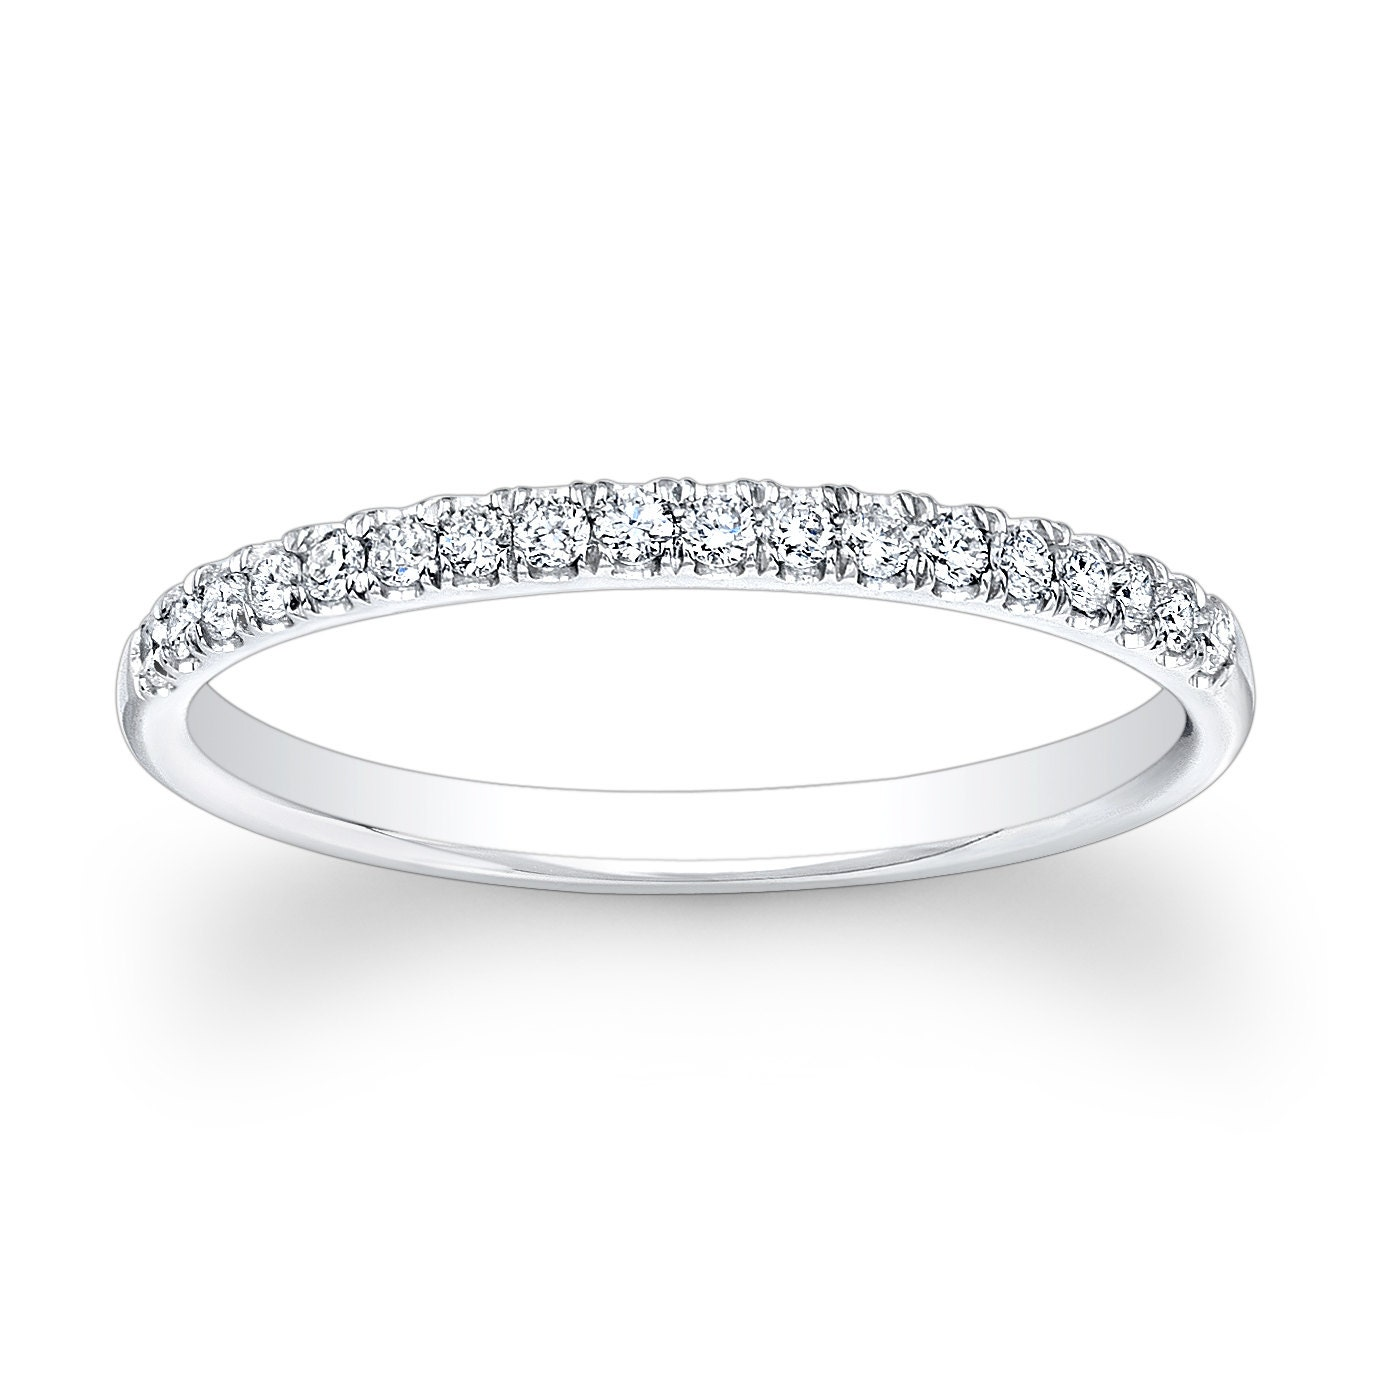 Types Of Wedding Rings For Women